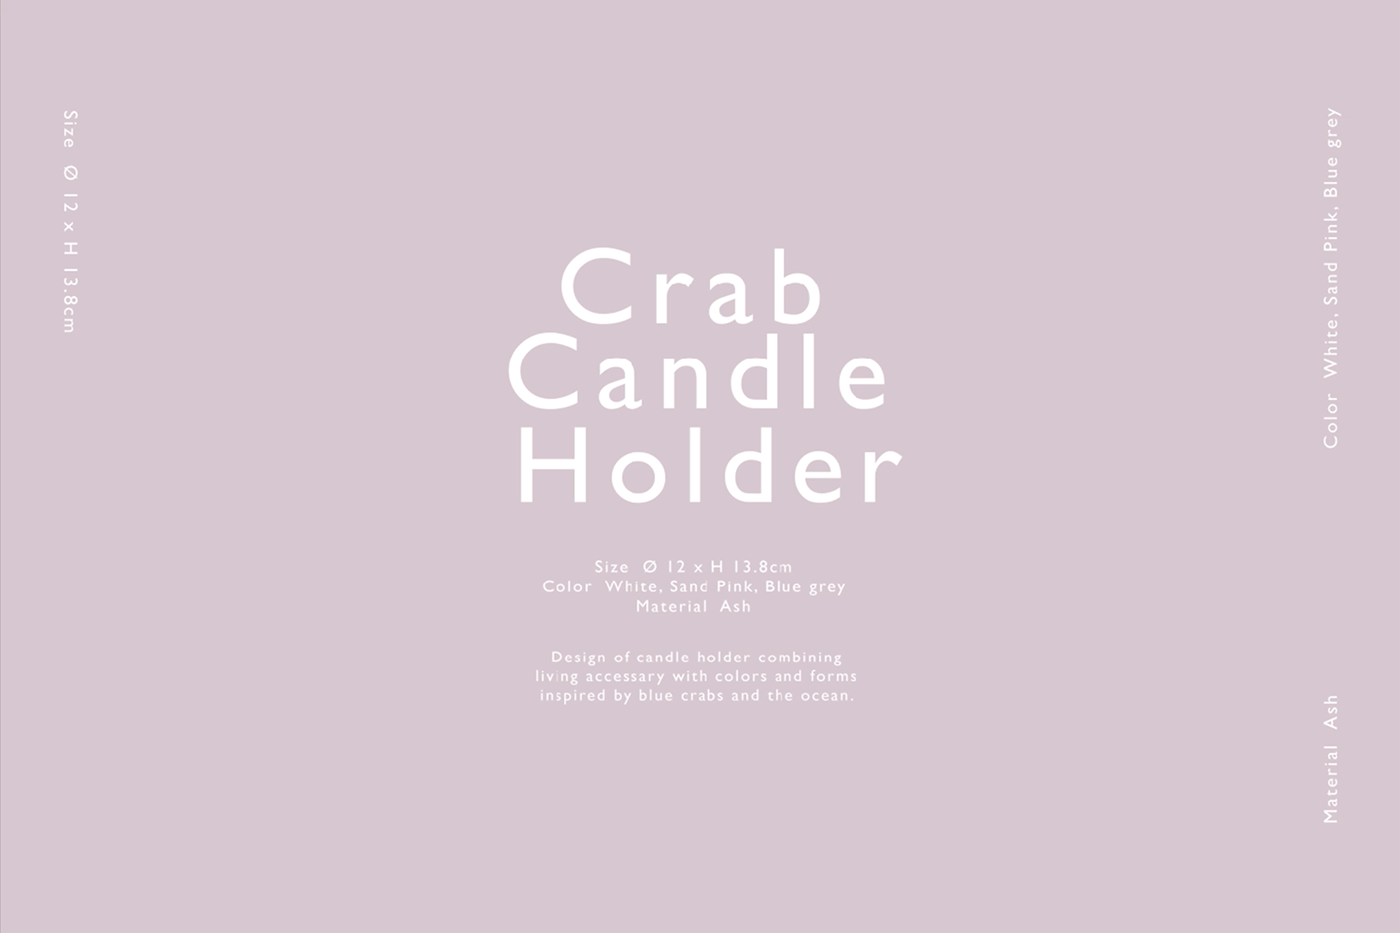 product product design  candle holder crab Nature wood Interior objet 오브제